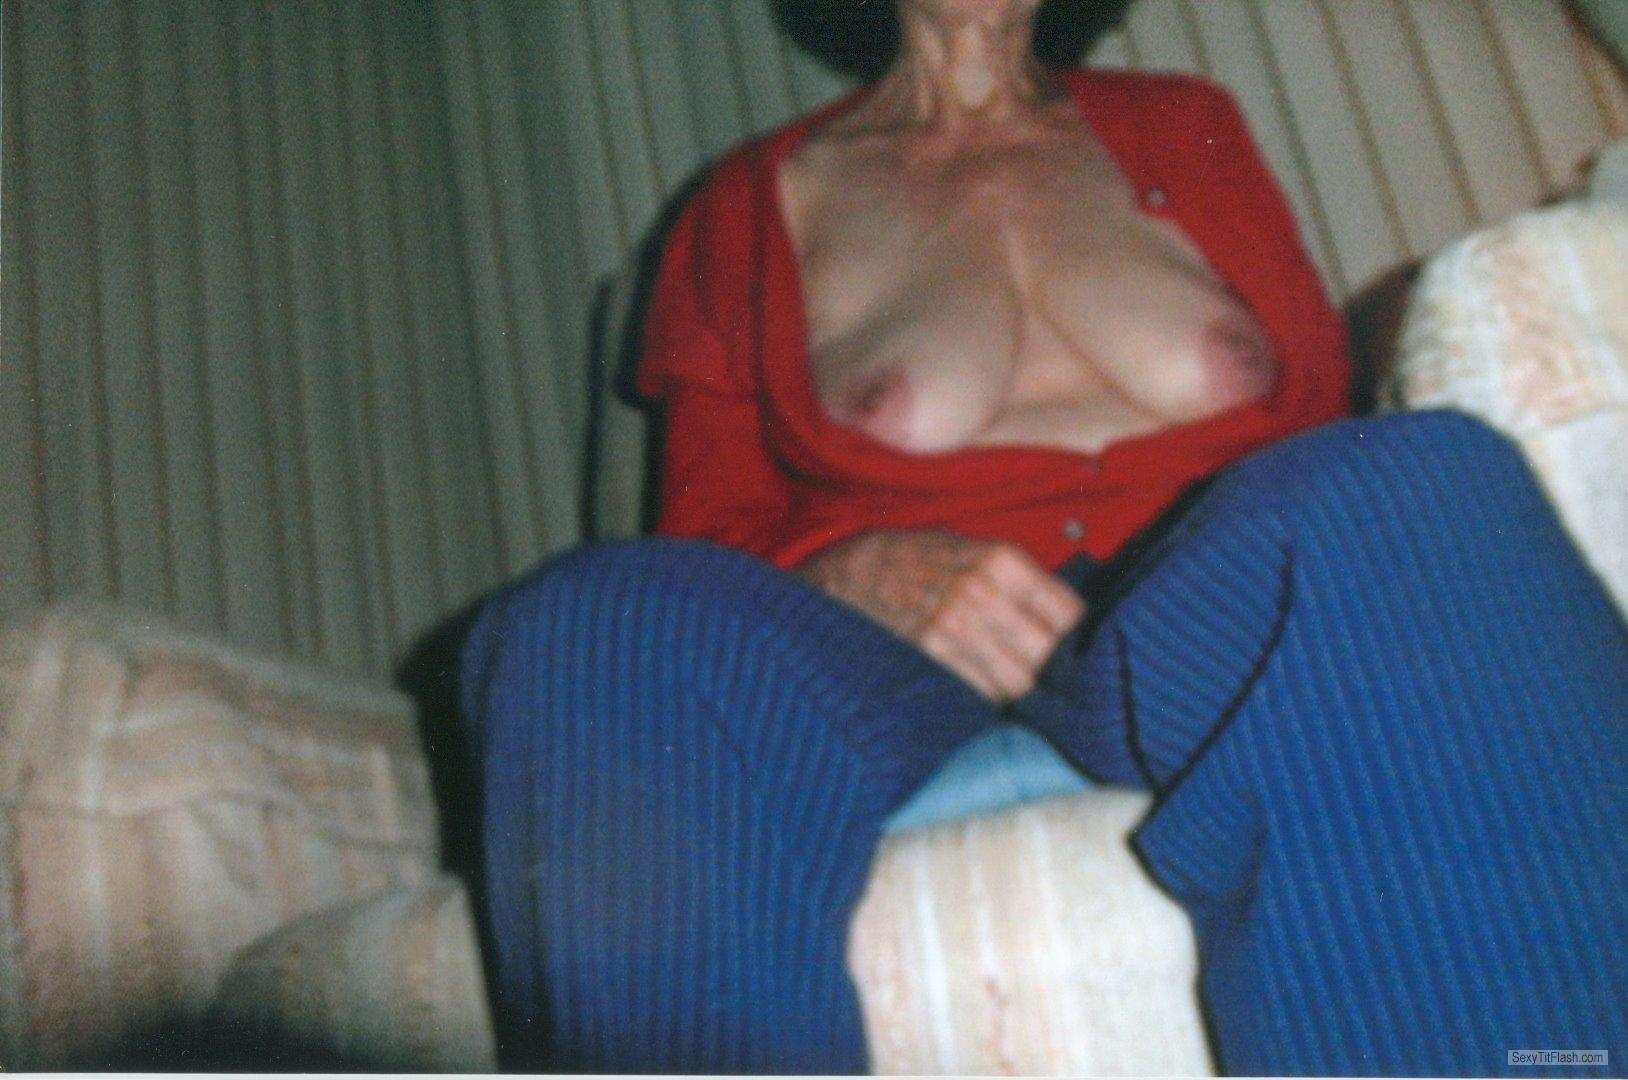 Tit Flash: Ex-Girlfriend's Big Tits - Annskee from United Kingdom